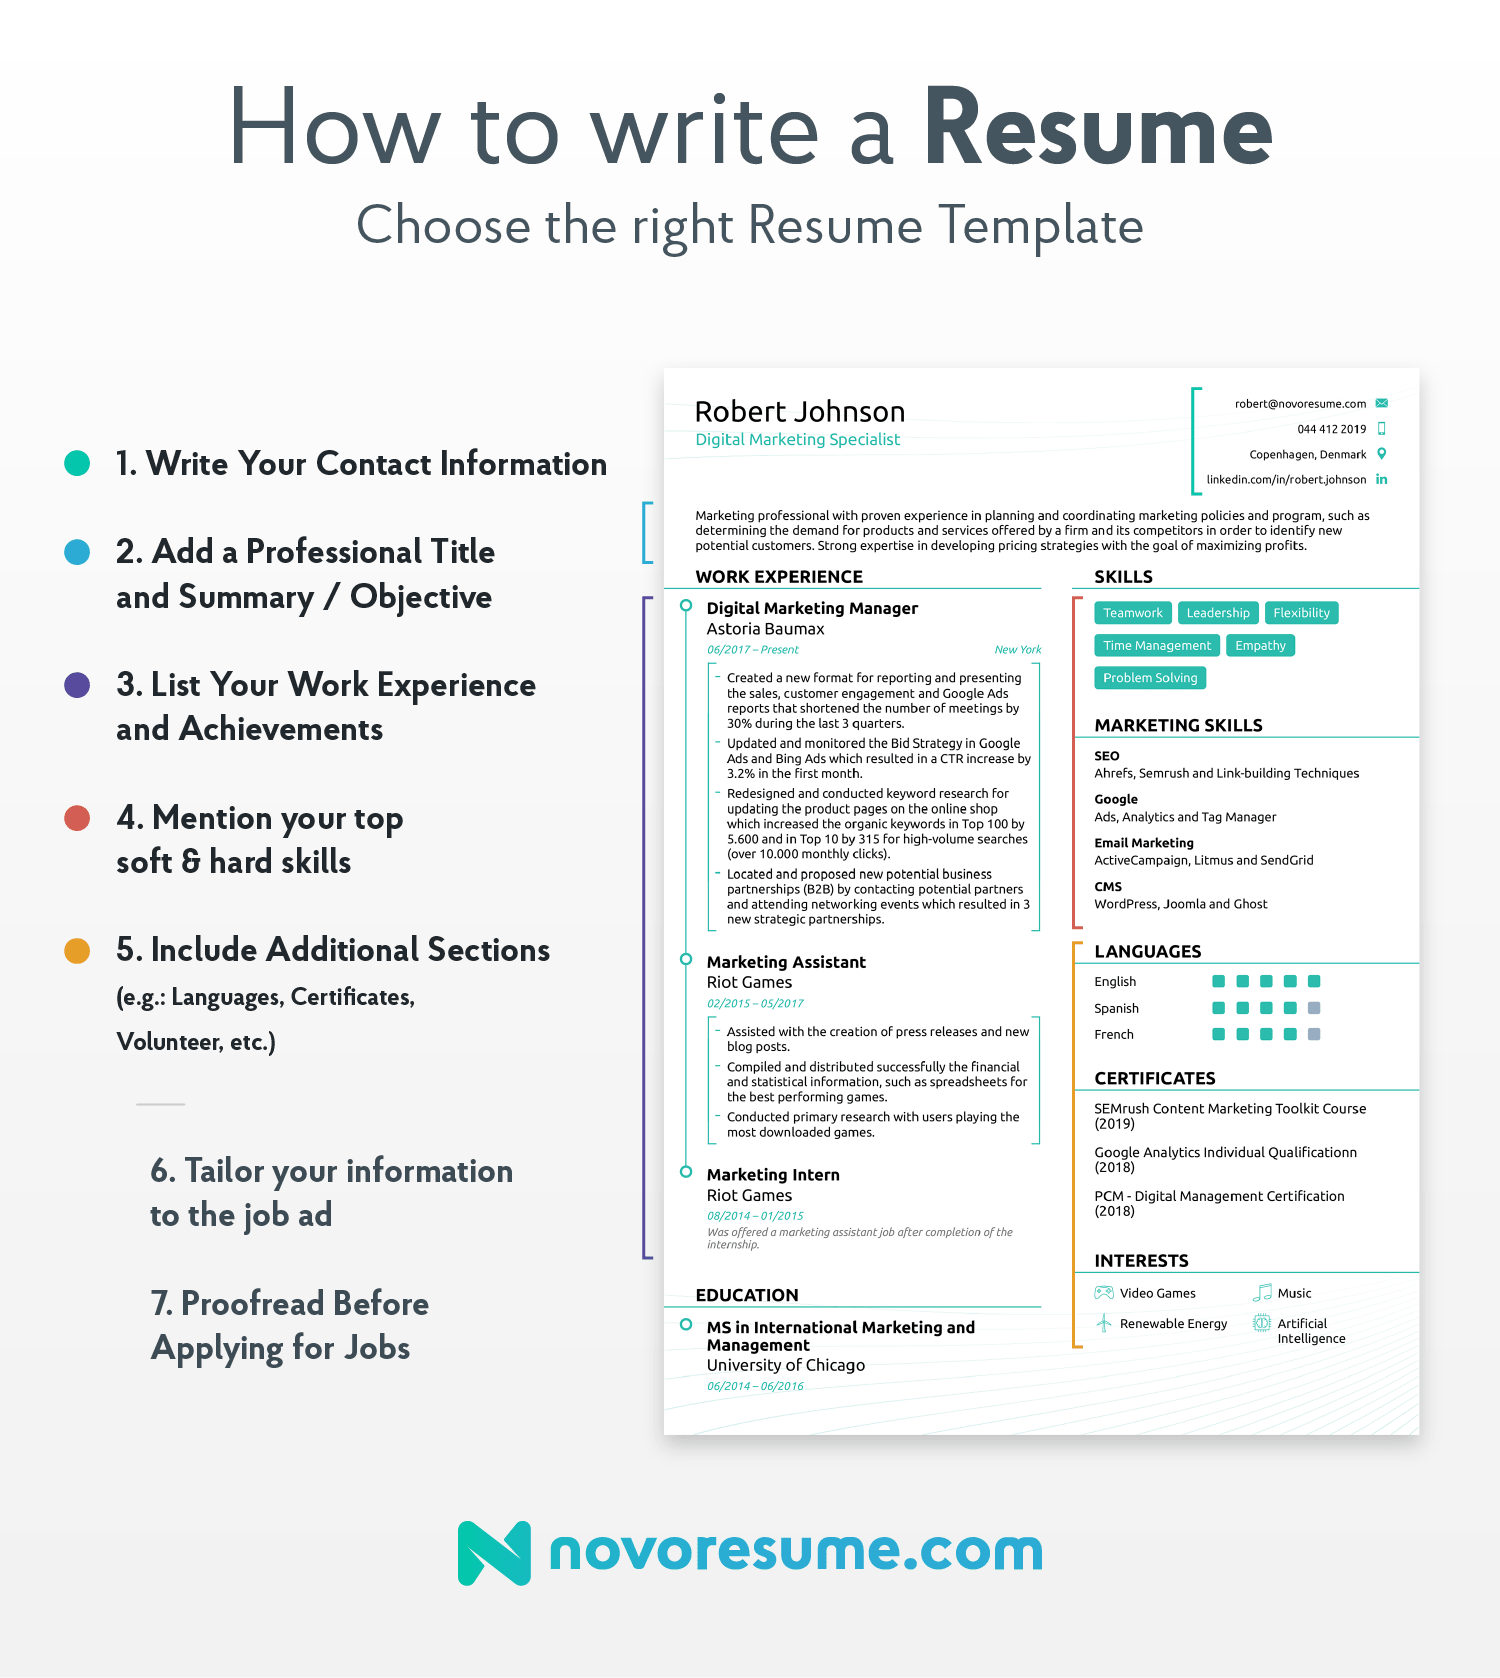 How To Write A Resume  Image Of Resume